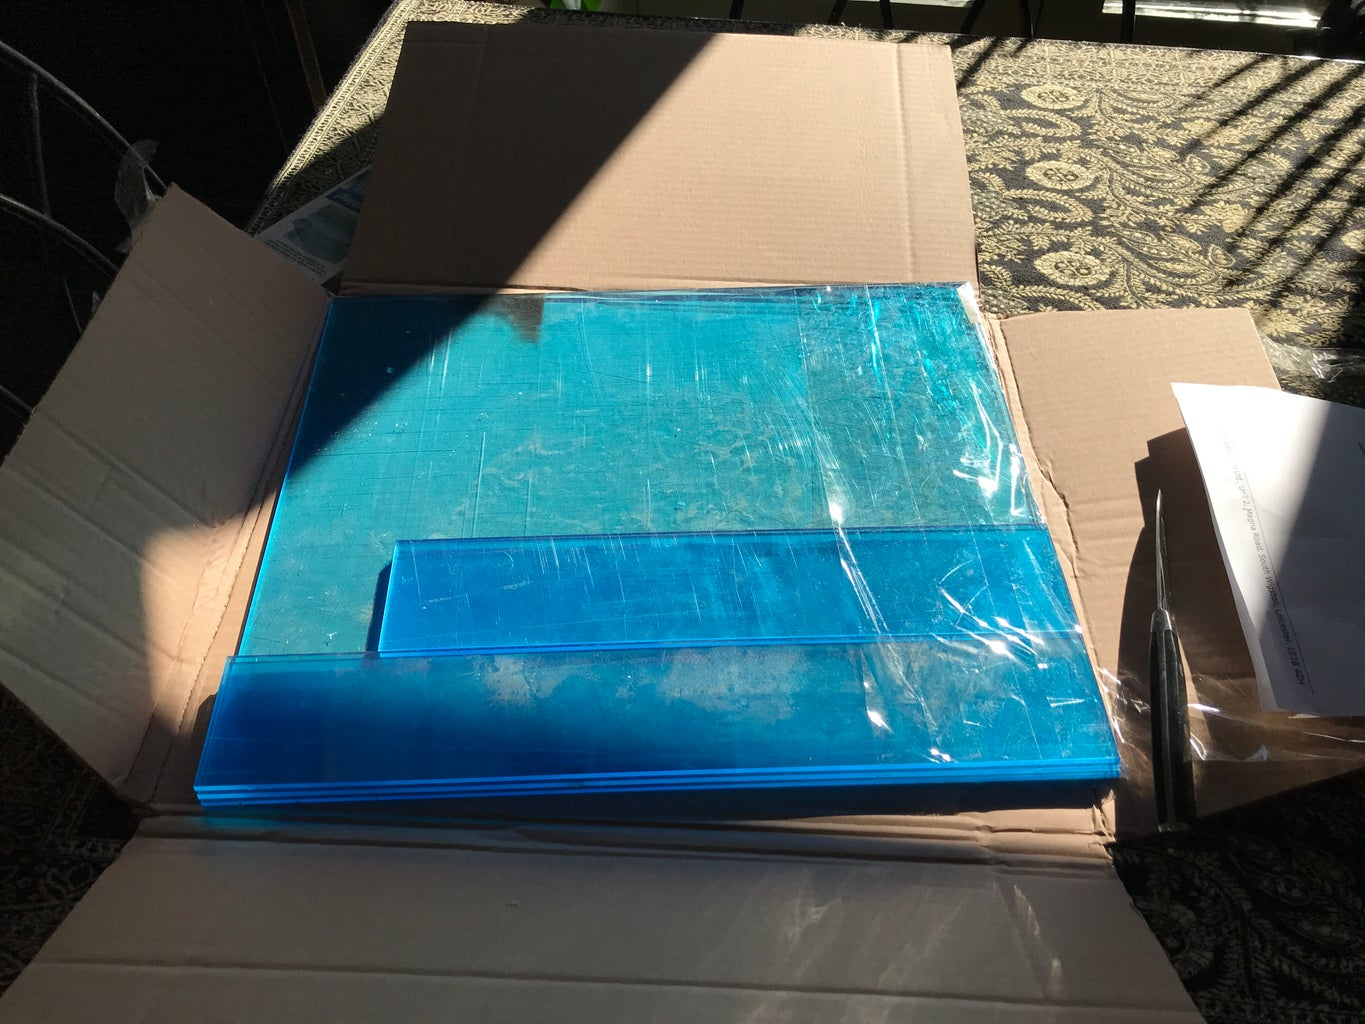 The Build - the Perspex Arrives